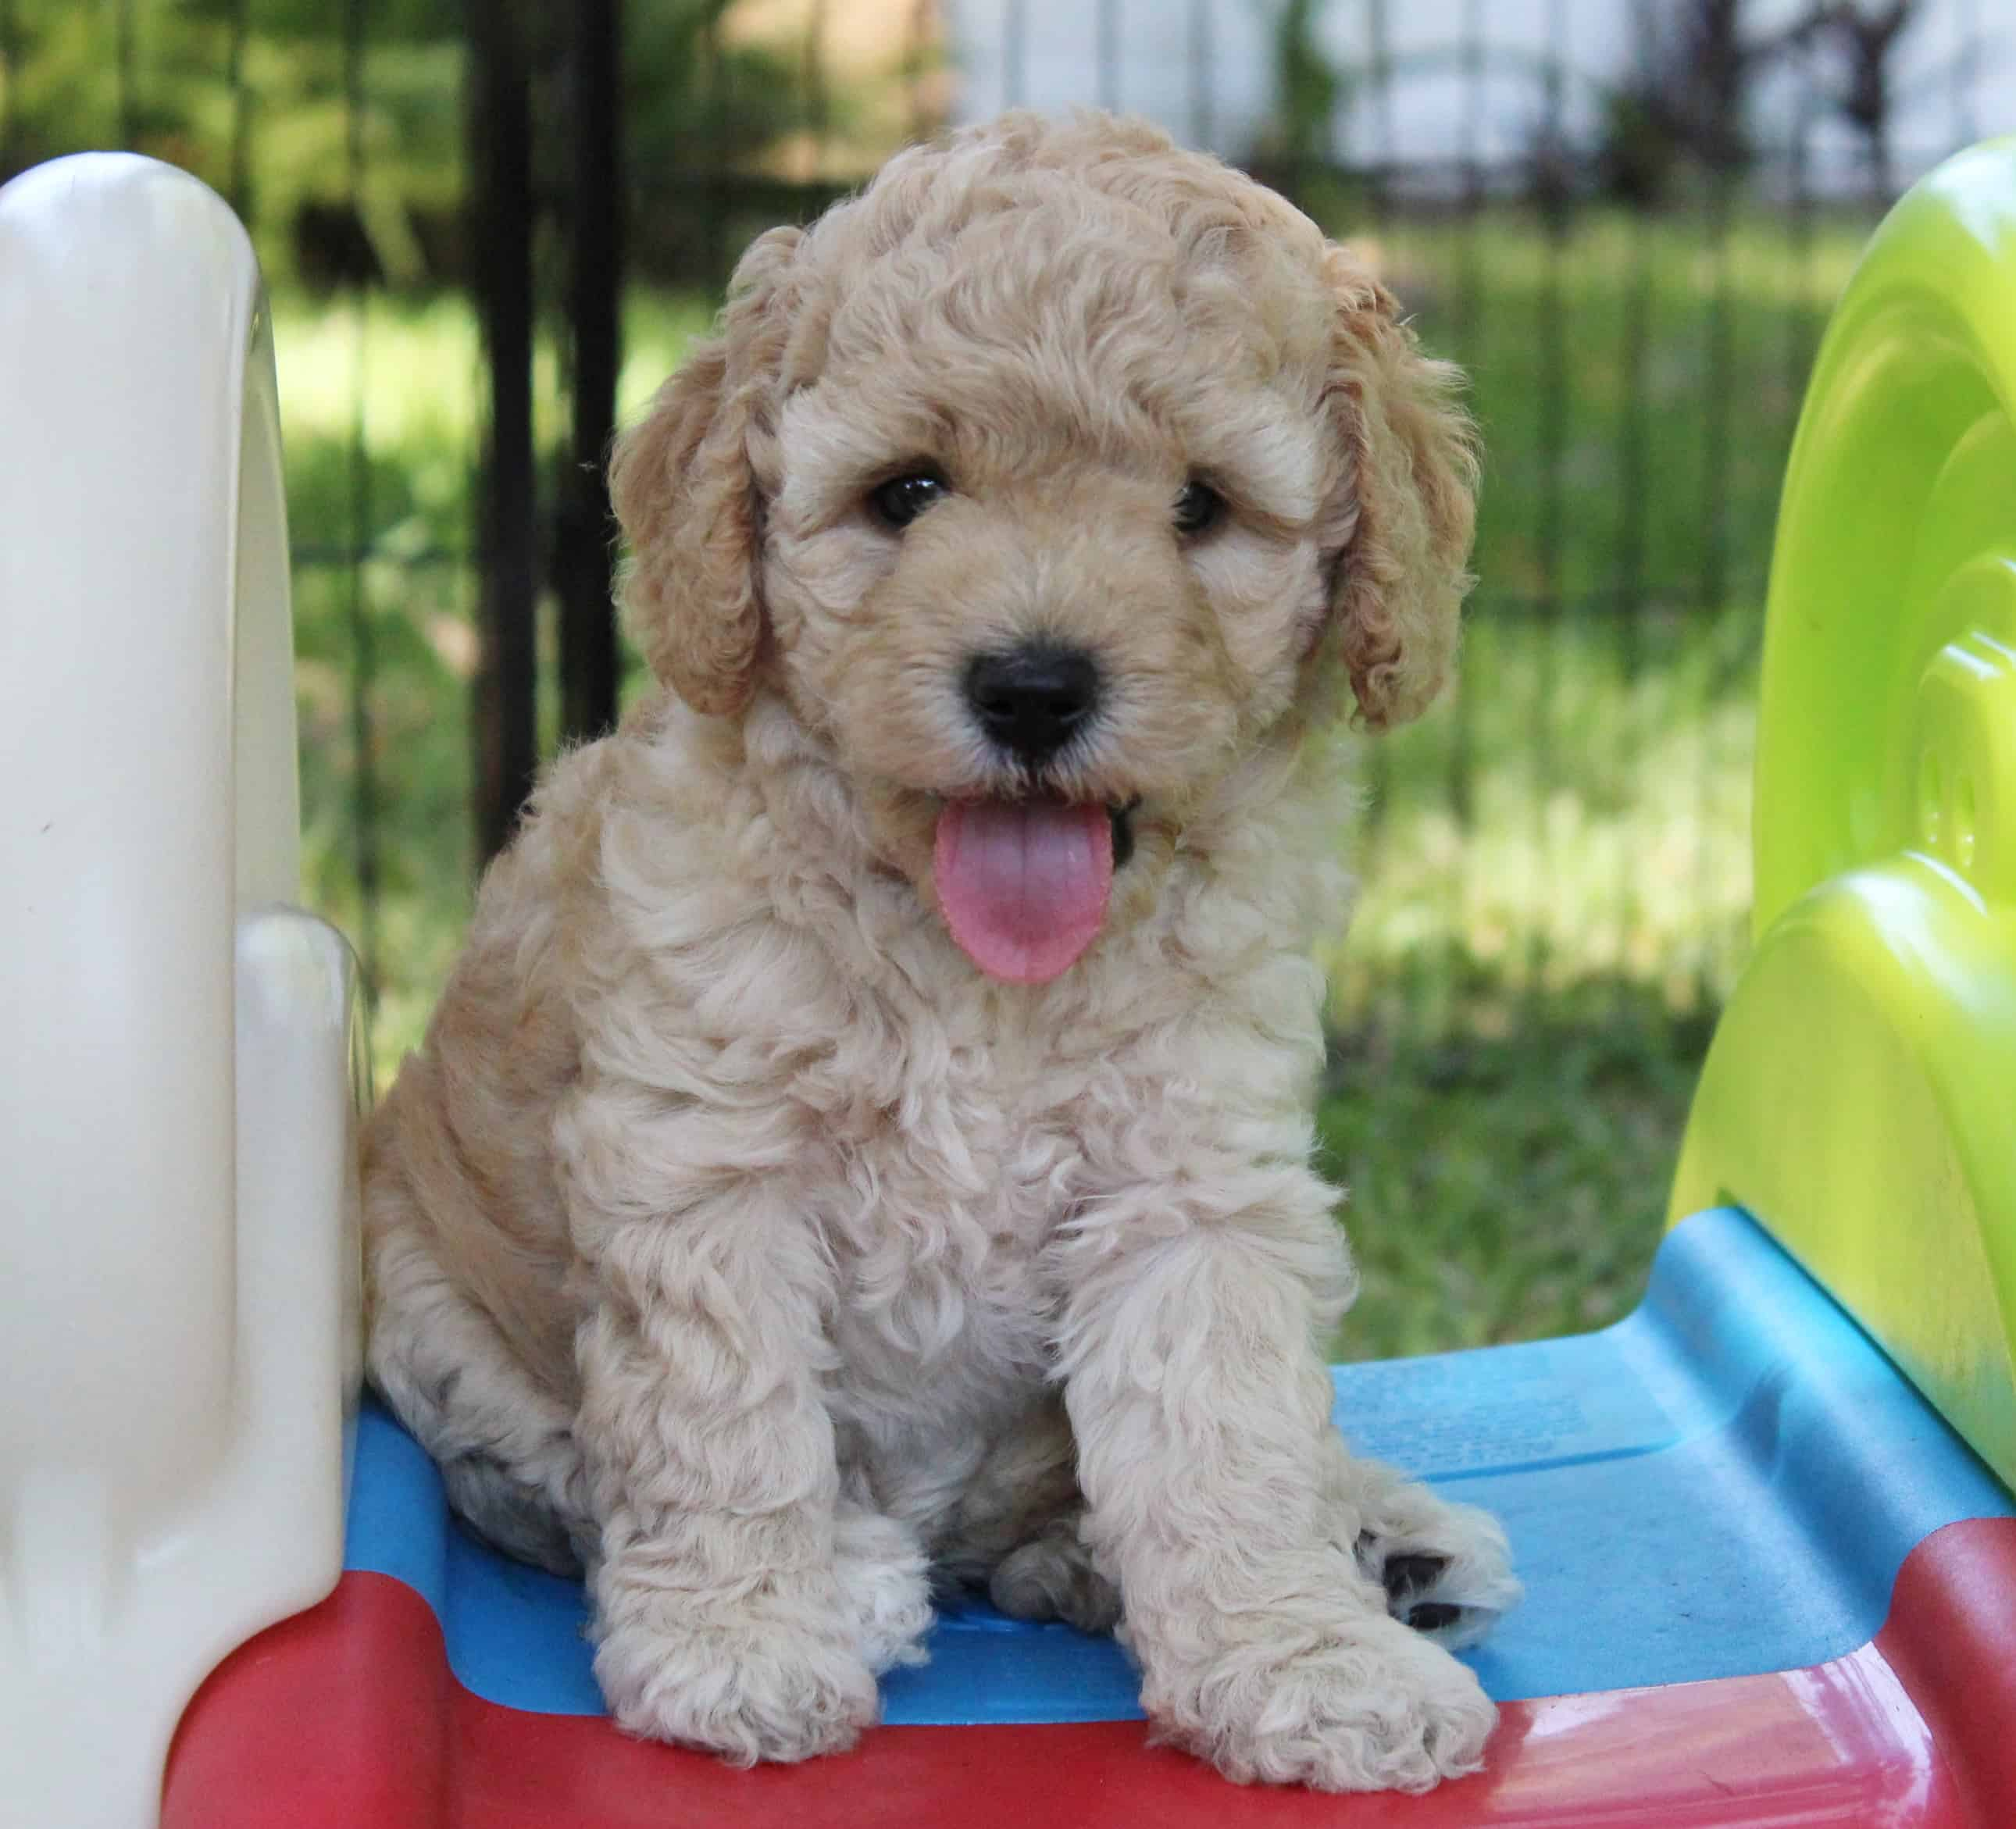 JoaLins' multi generational Australian Labradoodle puppy called Havarti from Caiya's Spring 2019 litter